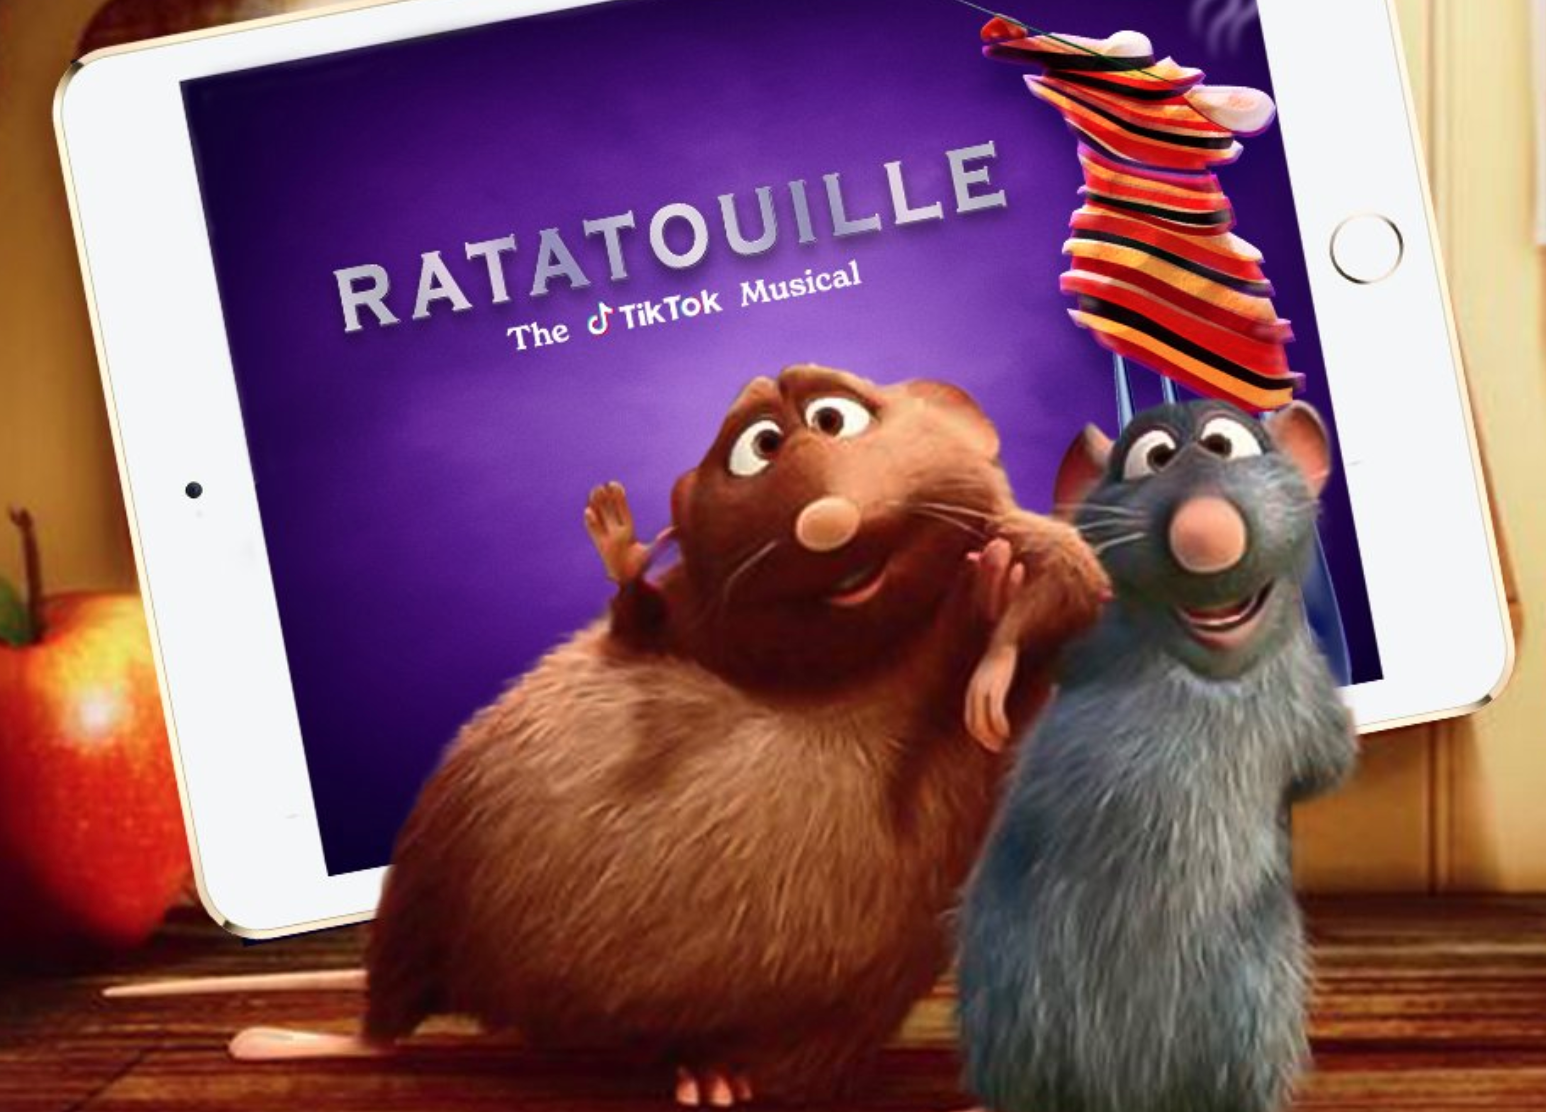 TikTok Made a Broadway Ratatouille Musical Happen. Here's How Twitter Reacted.